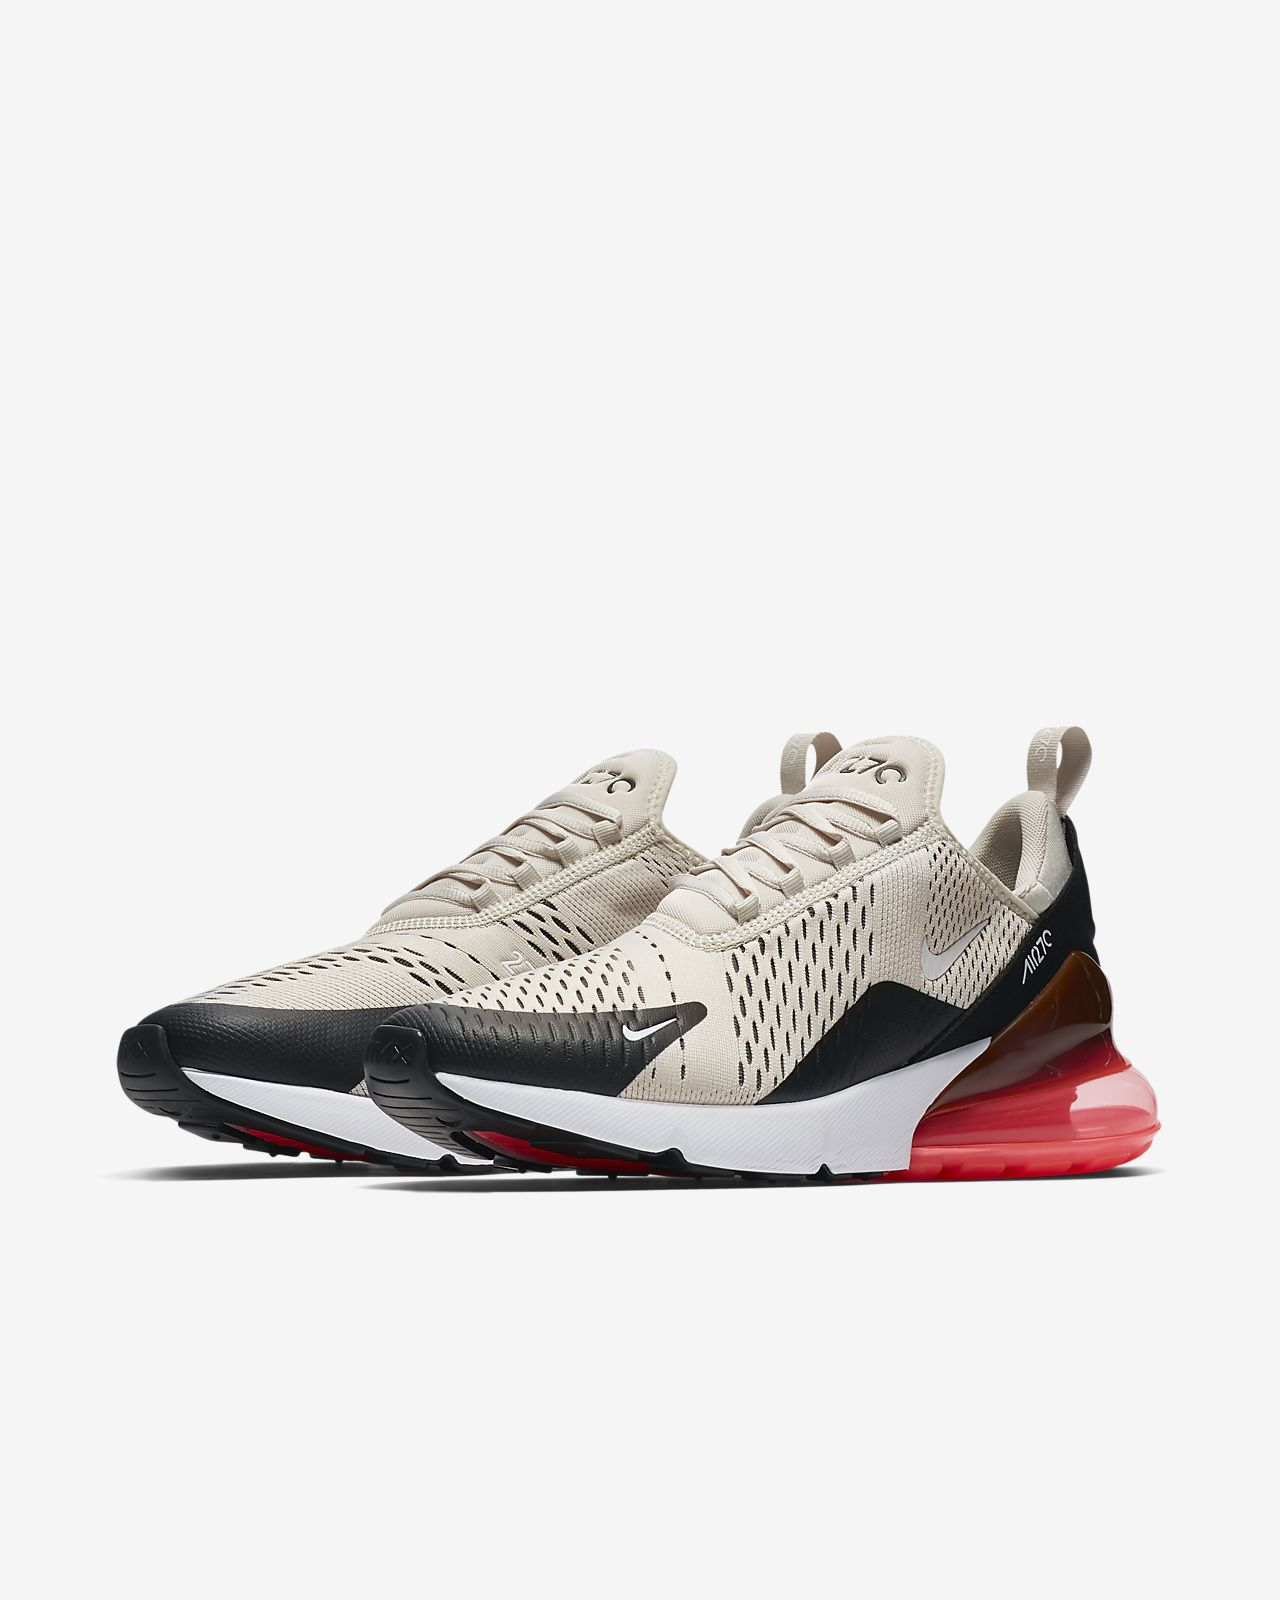 ebf37a3fb3 Nike Air Max 270 Herrenschuh. Nike.com AT